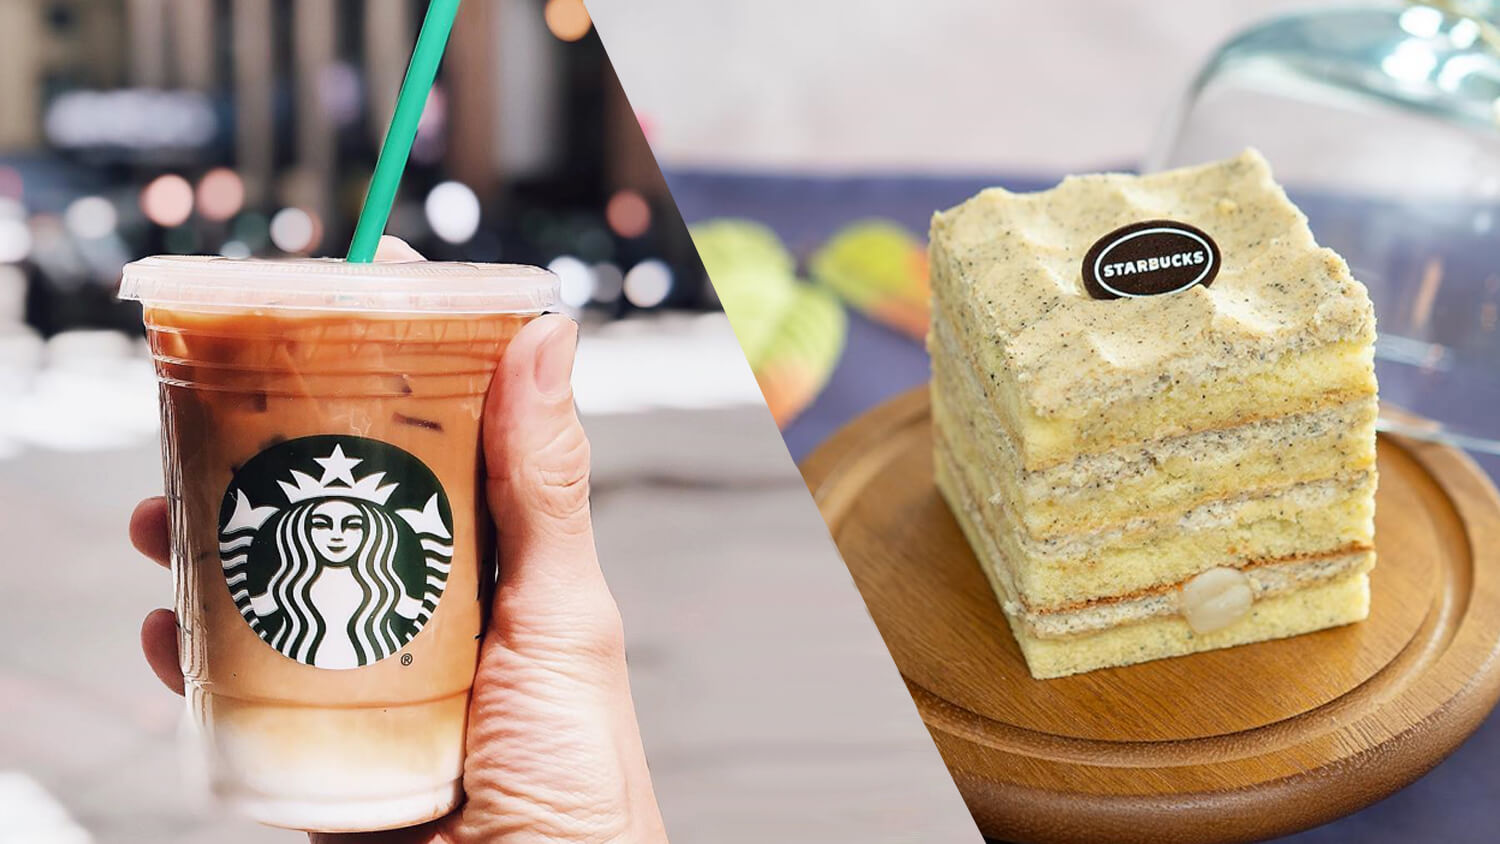 Vegan Cake Launches in Starbucks South Korea